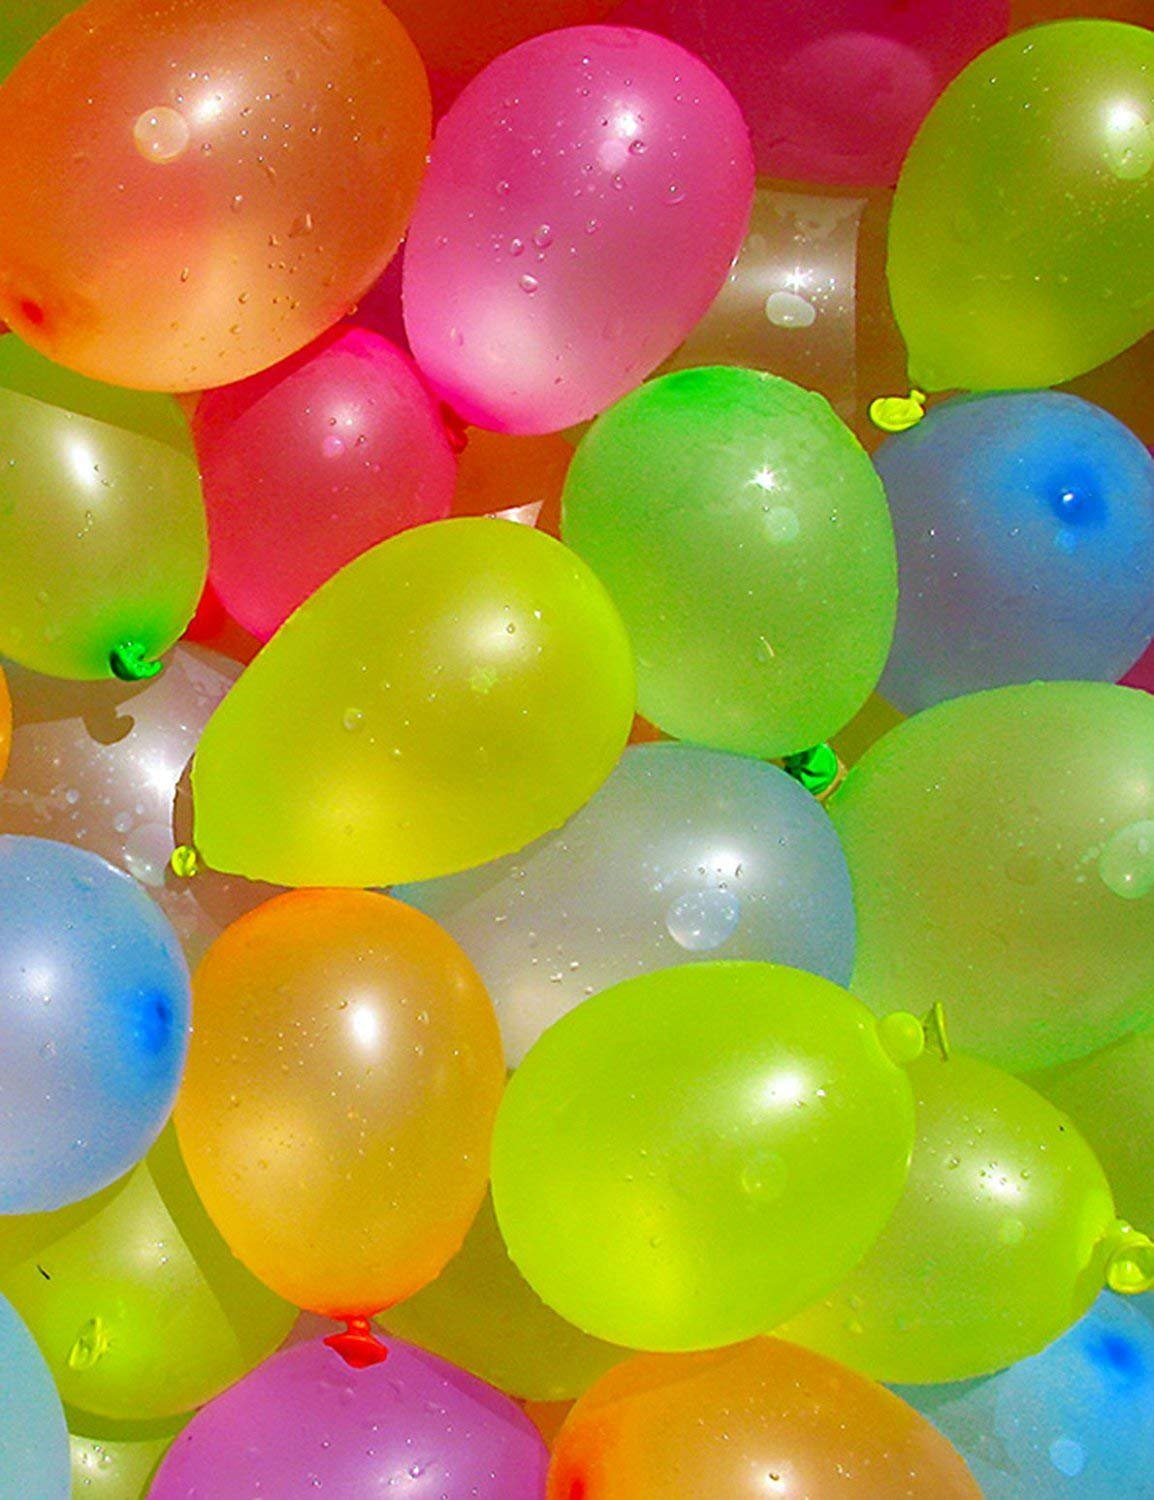 Water Balloons for Kids Girls Boys Balloons Set Party Games Quick Fill Water Balloons 594 Bunches Swimming Pool Outdoor Summer Fun A6 by Magic balloons (Image #6)